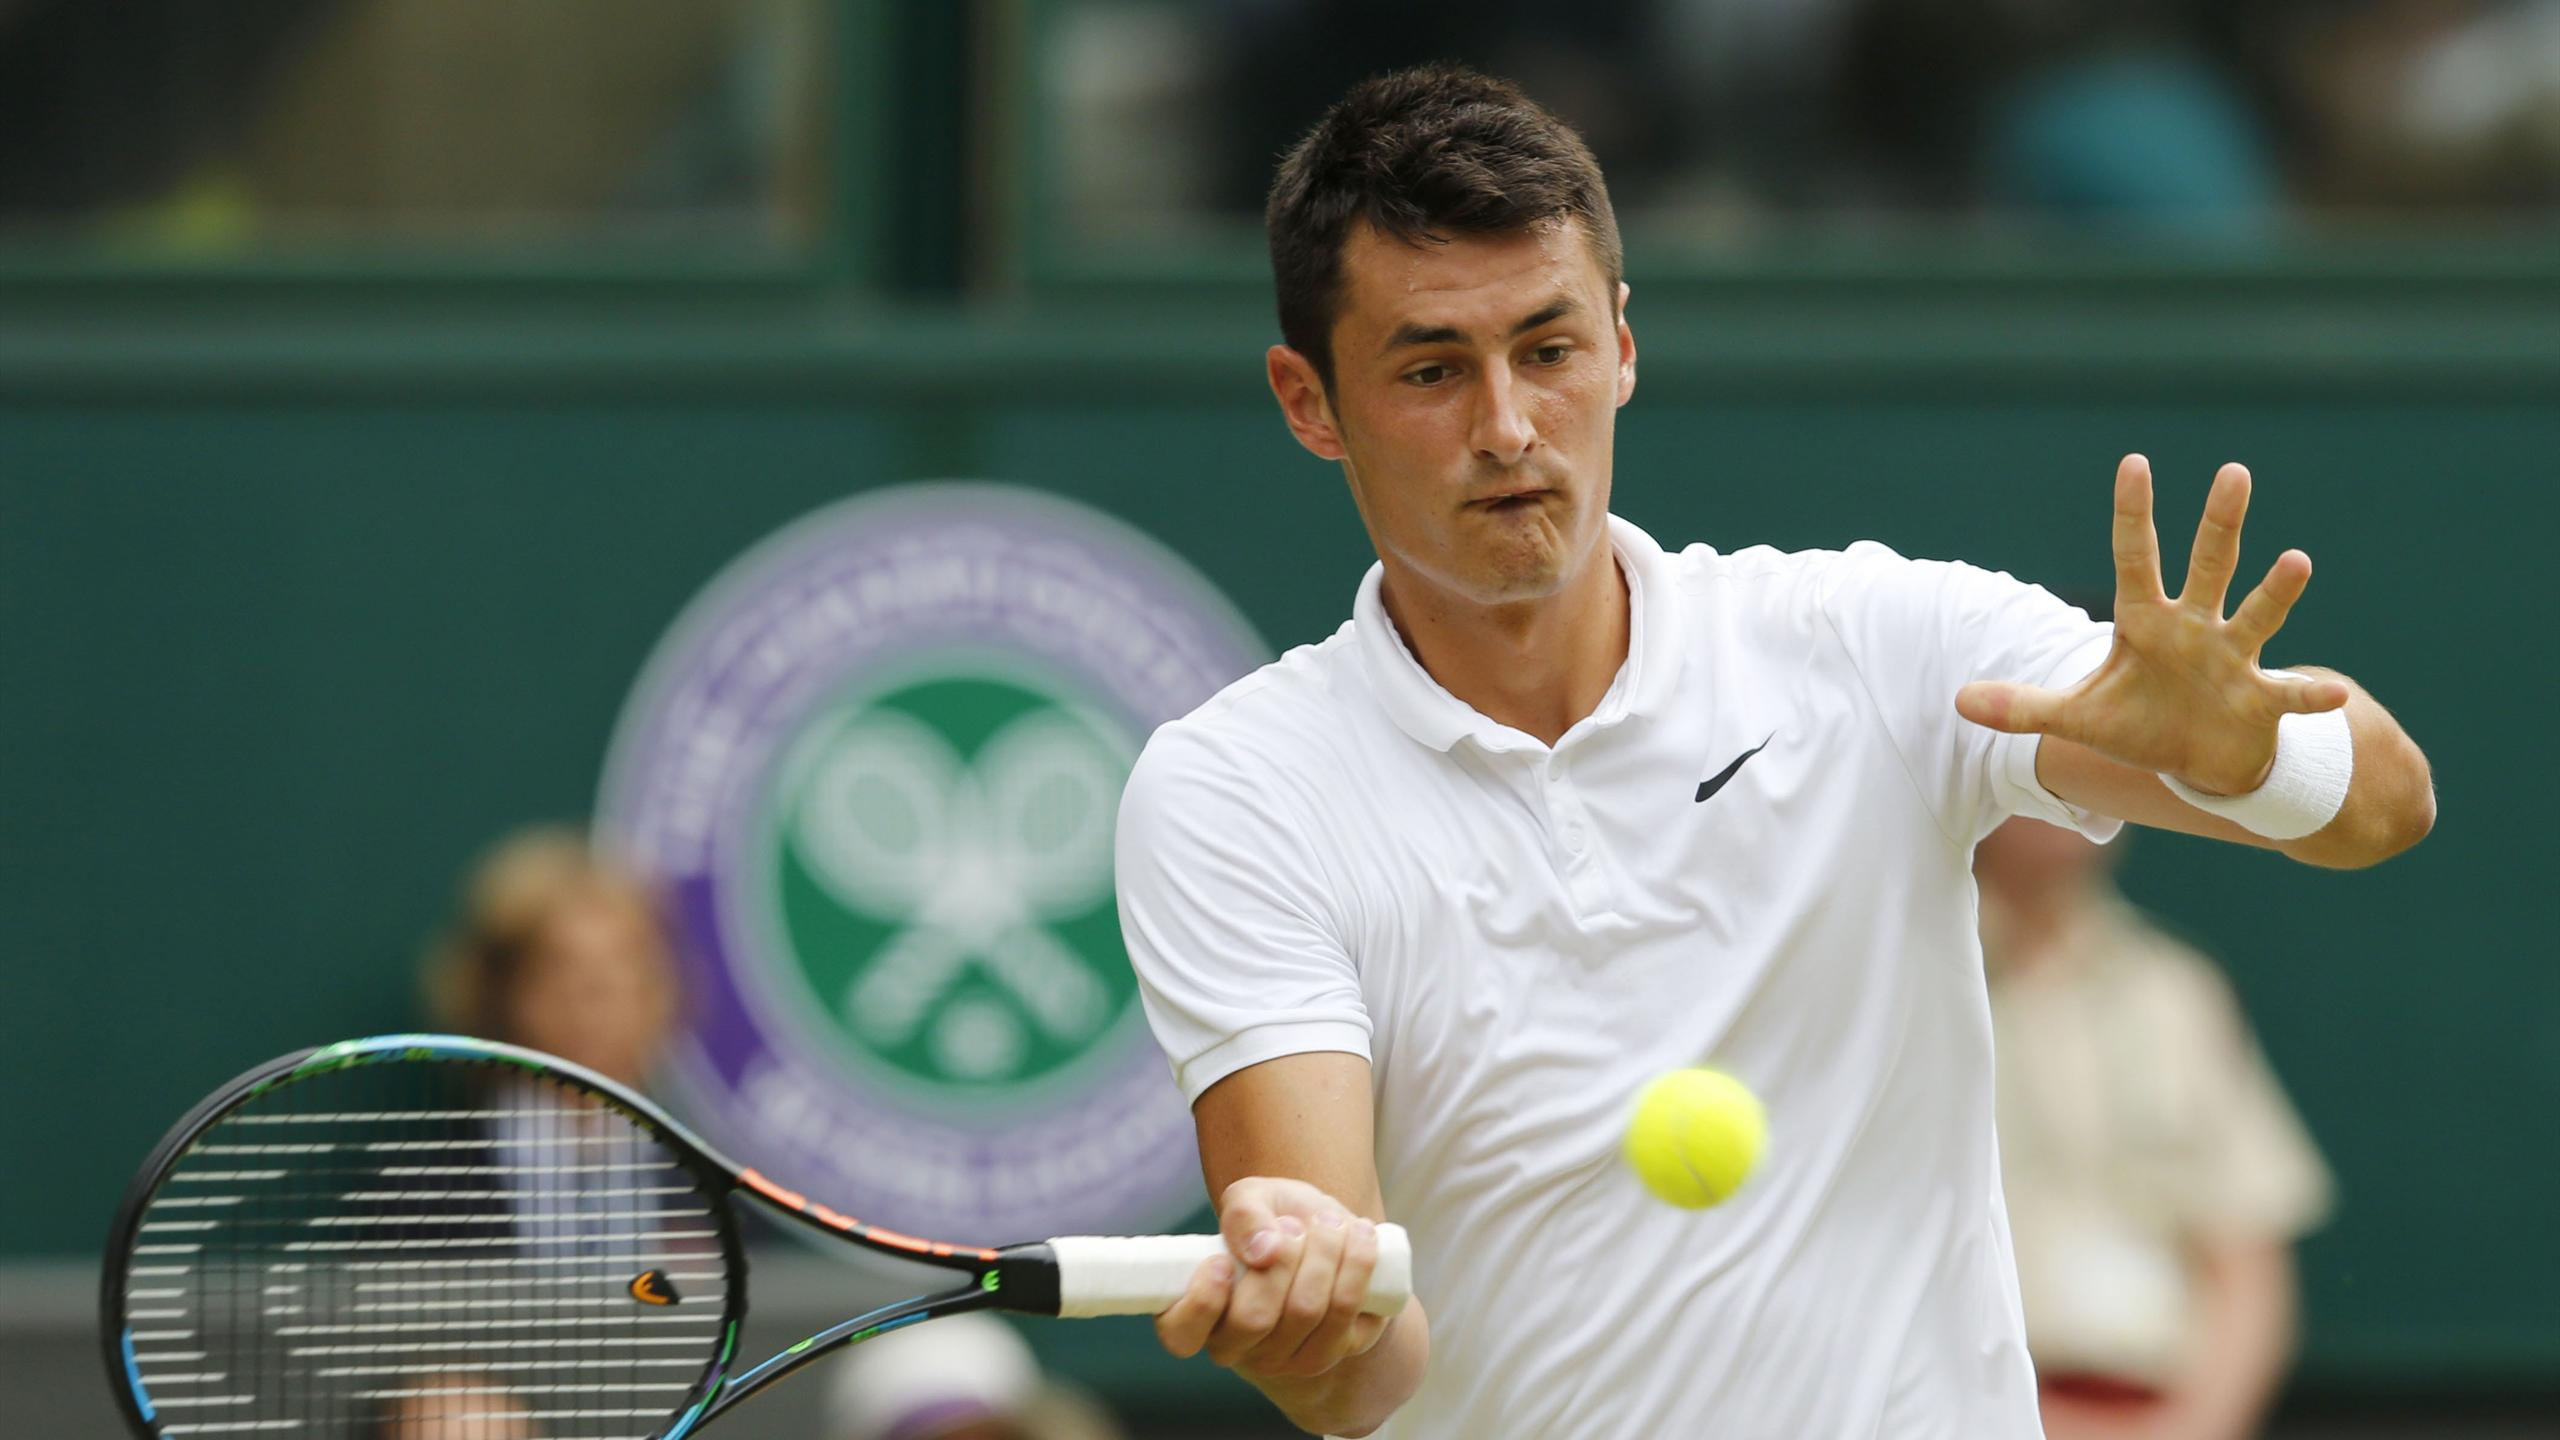 Bernard Tomic of Australia hits a shot during his match against Novak Djokovic